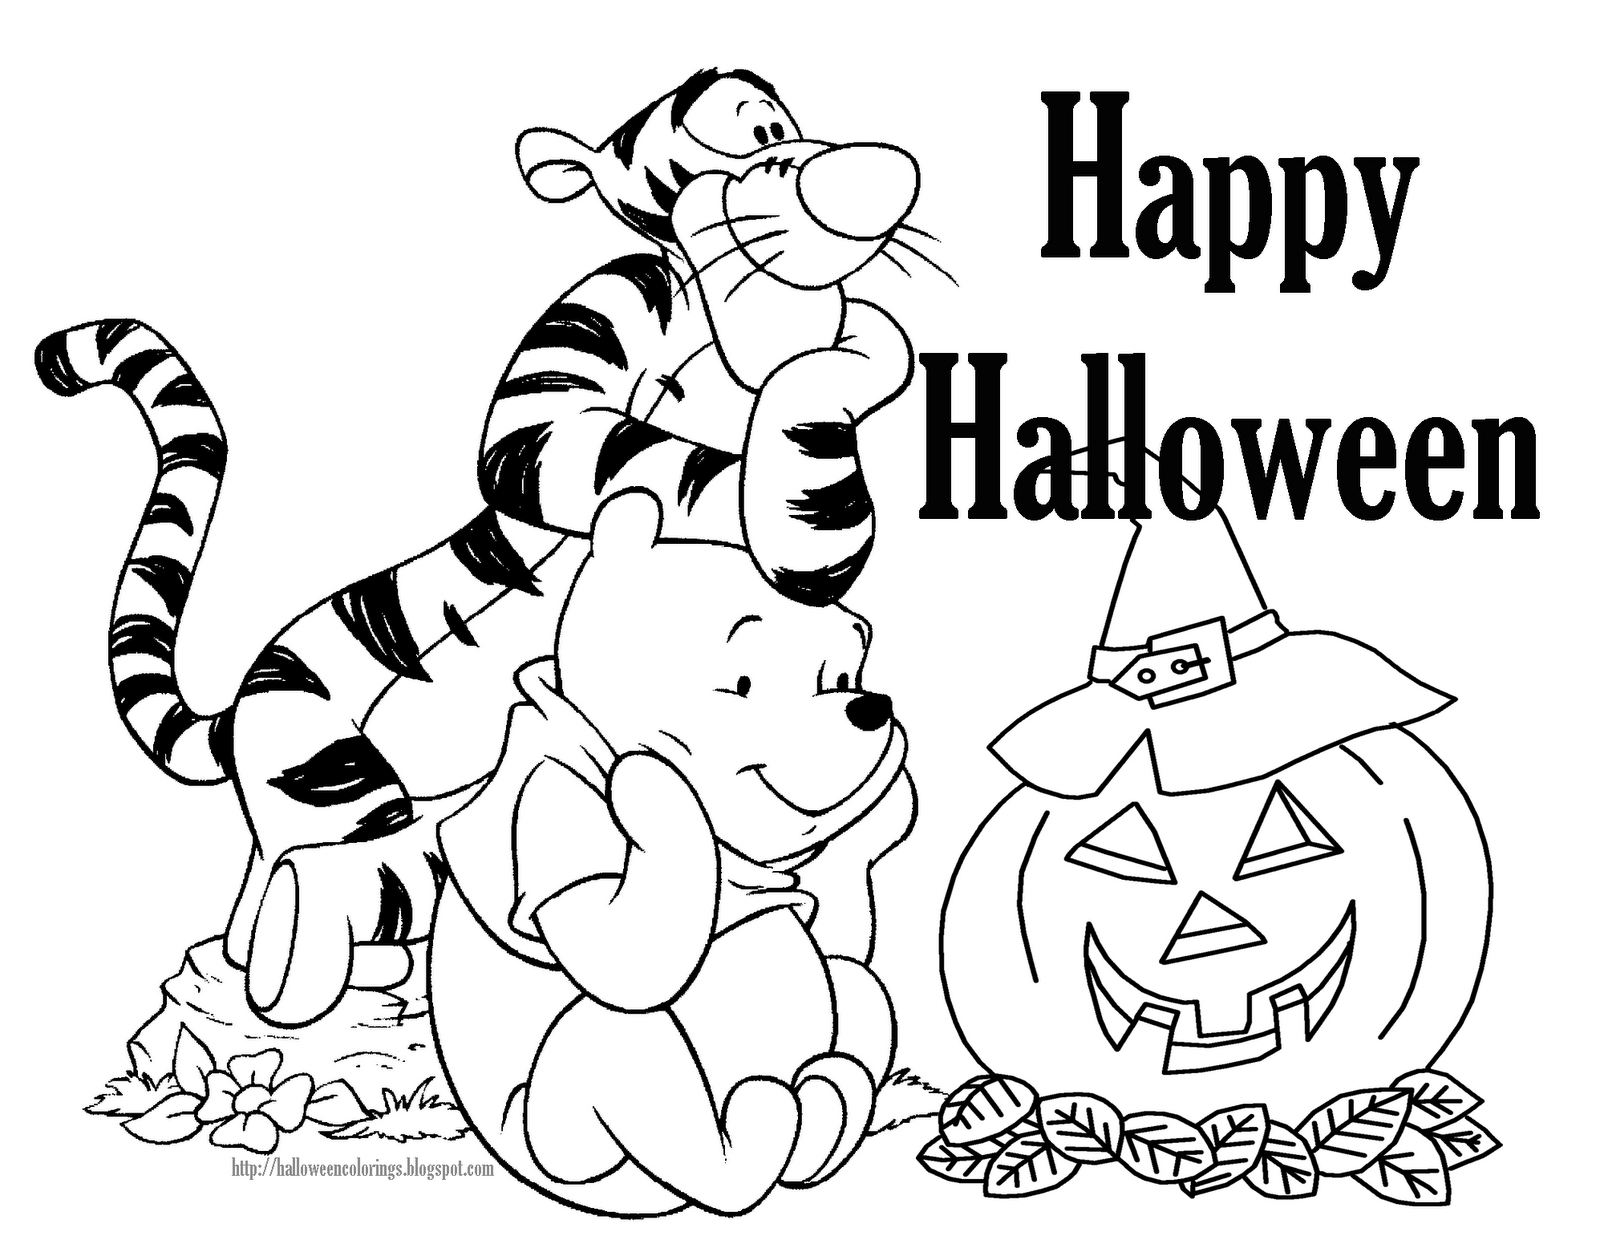 HALLOWEEN+COLORINGS22 Disney Halloween Coloring Book Pages